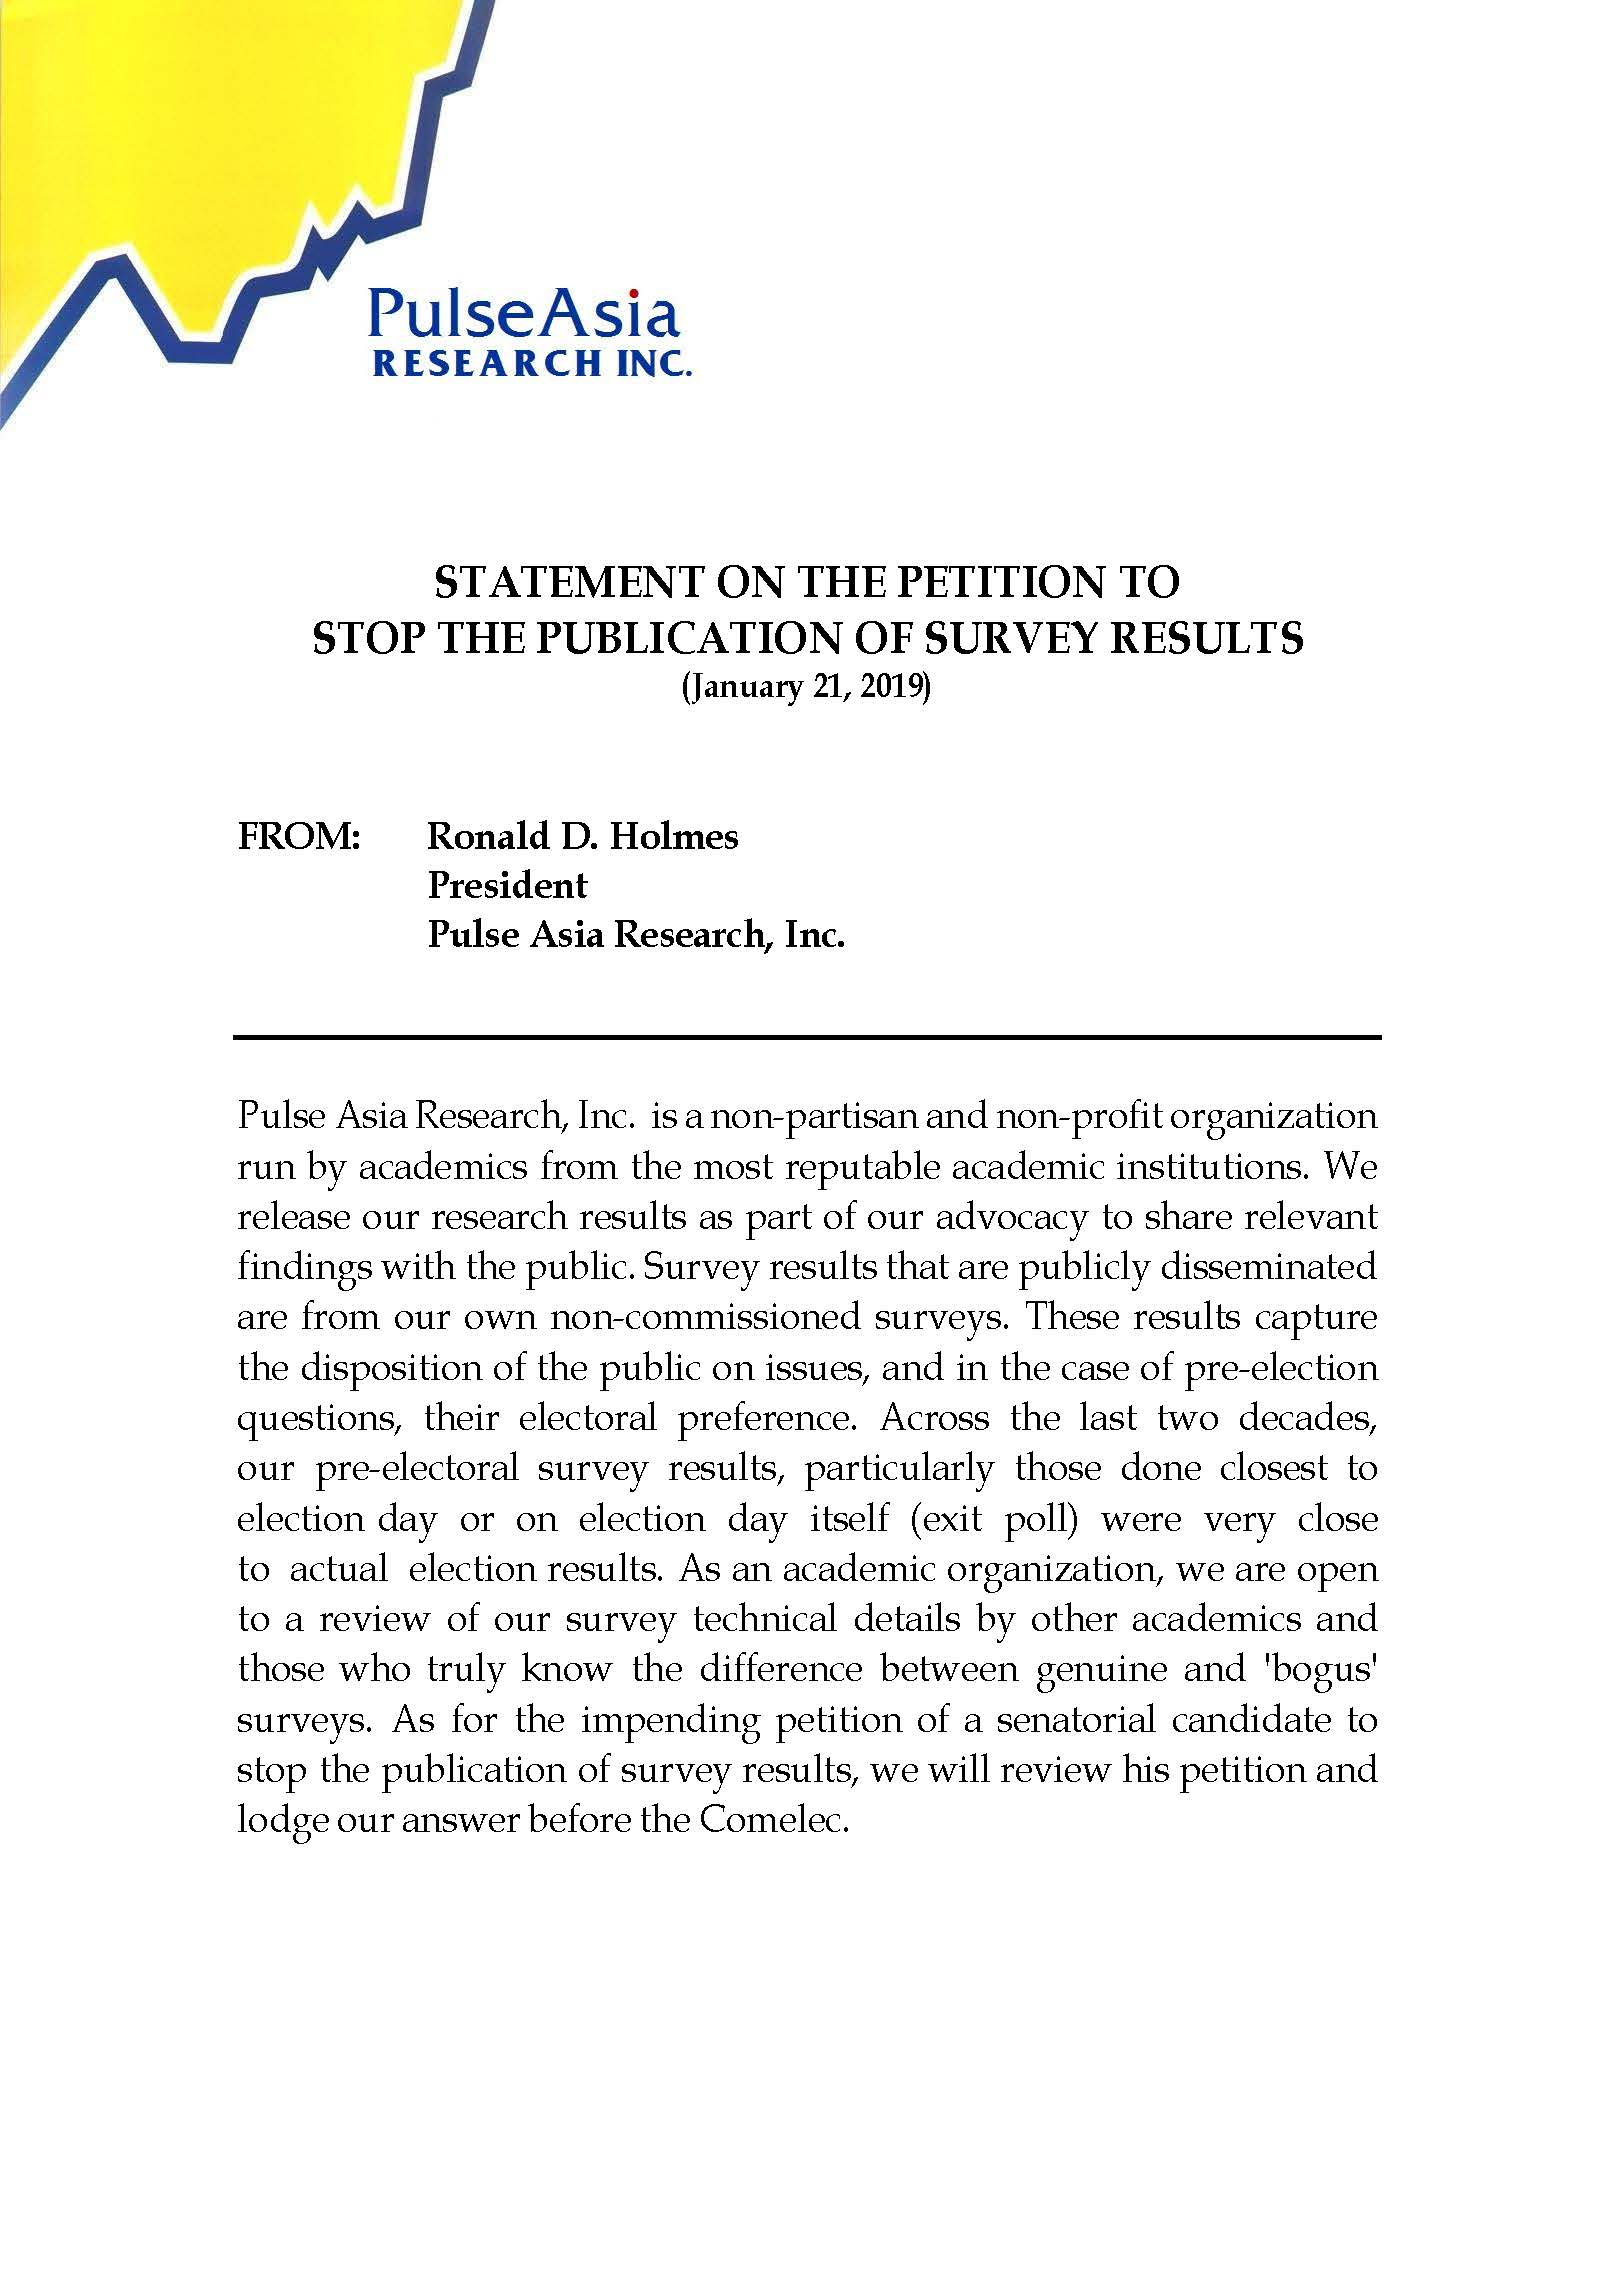 Statement on the Petition to Stop the Publication of Survey Results